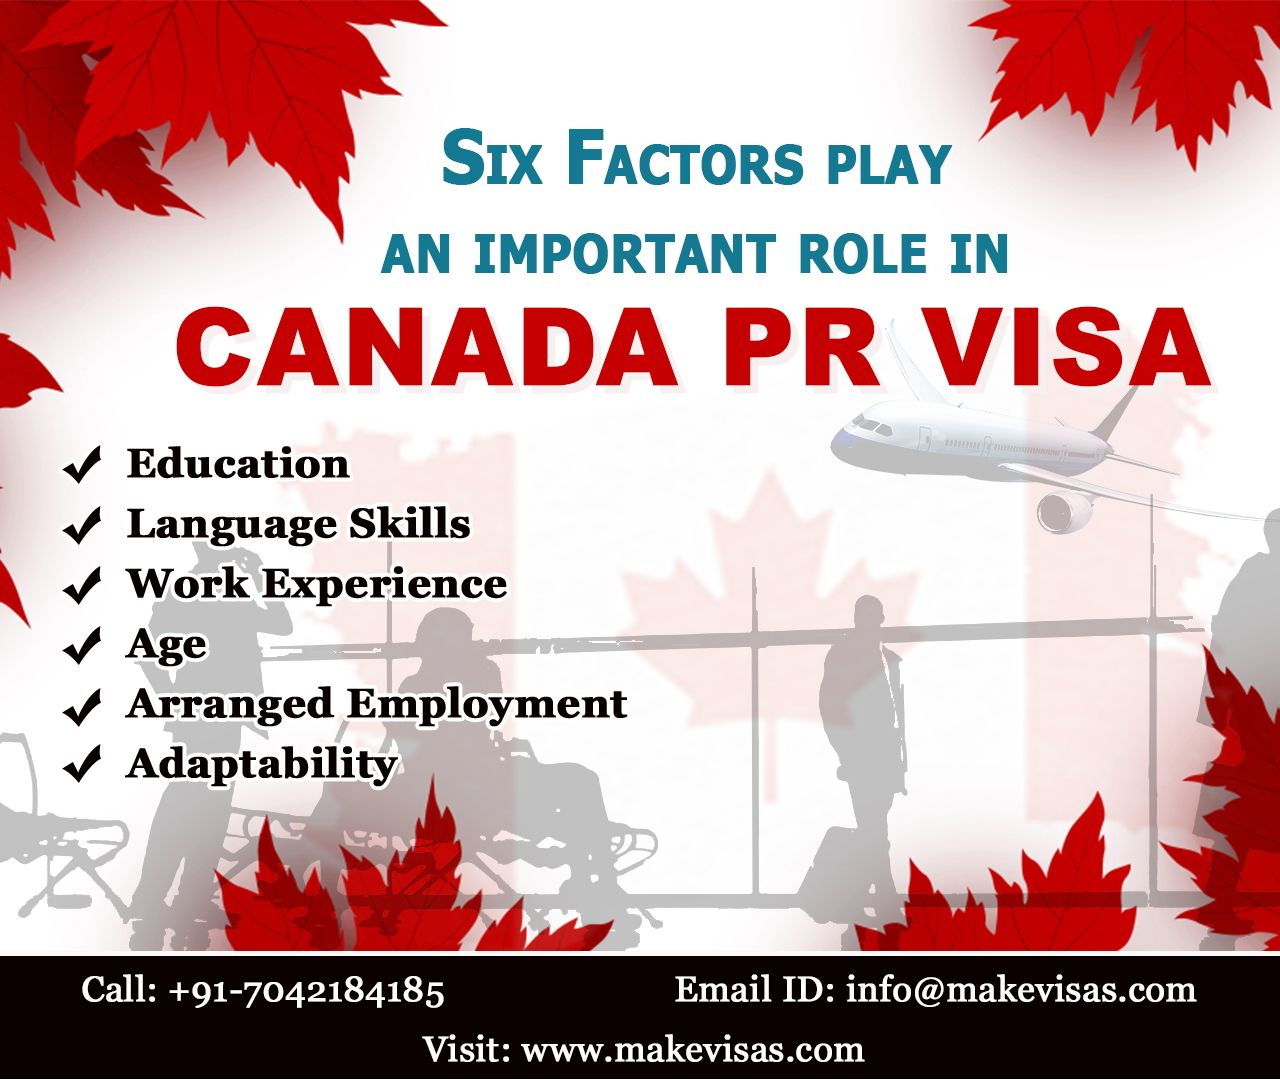 Do you have plans to Immigrate to Canada? These factors